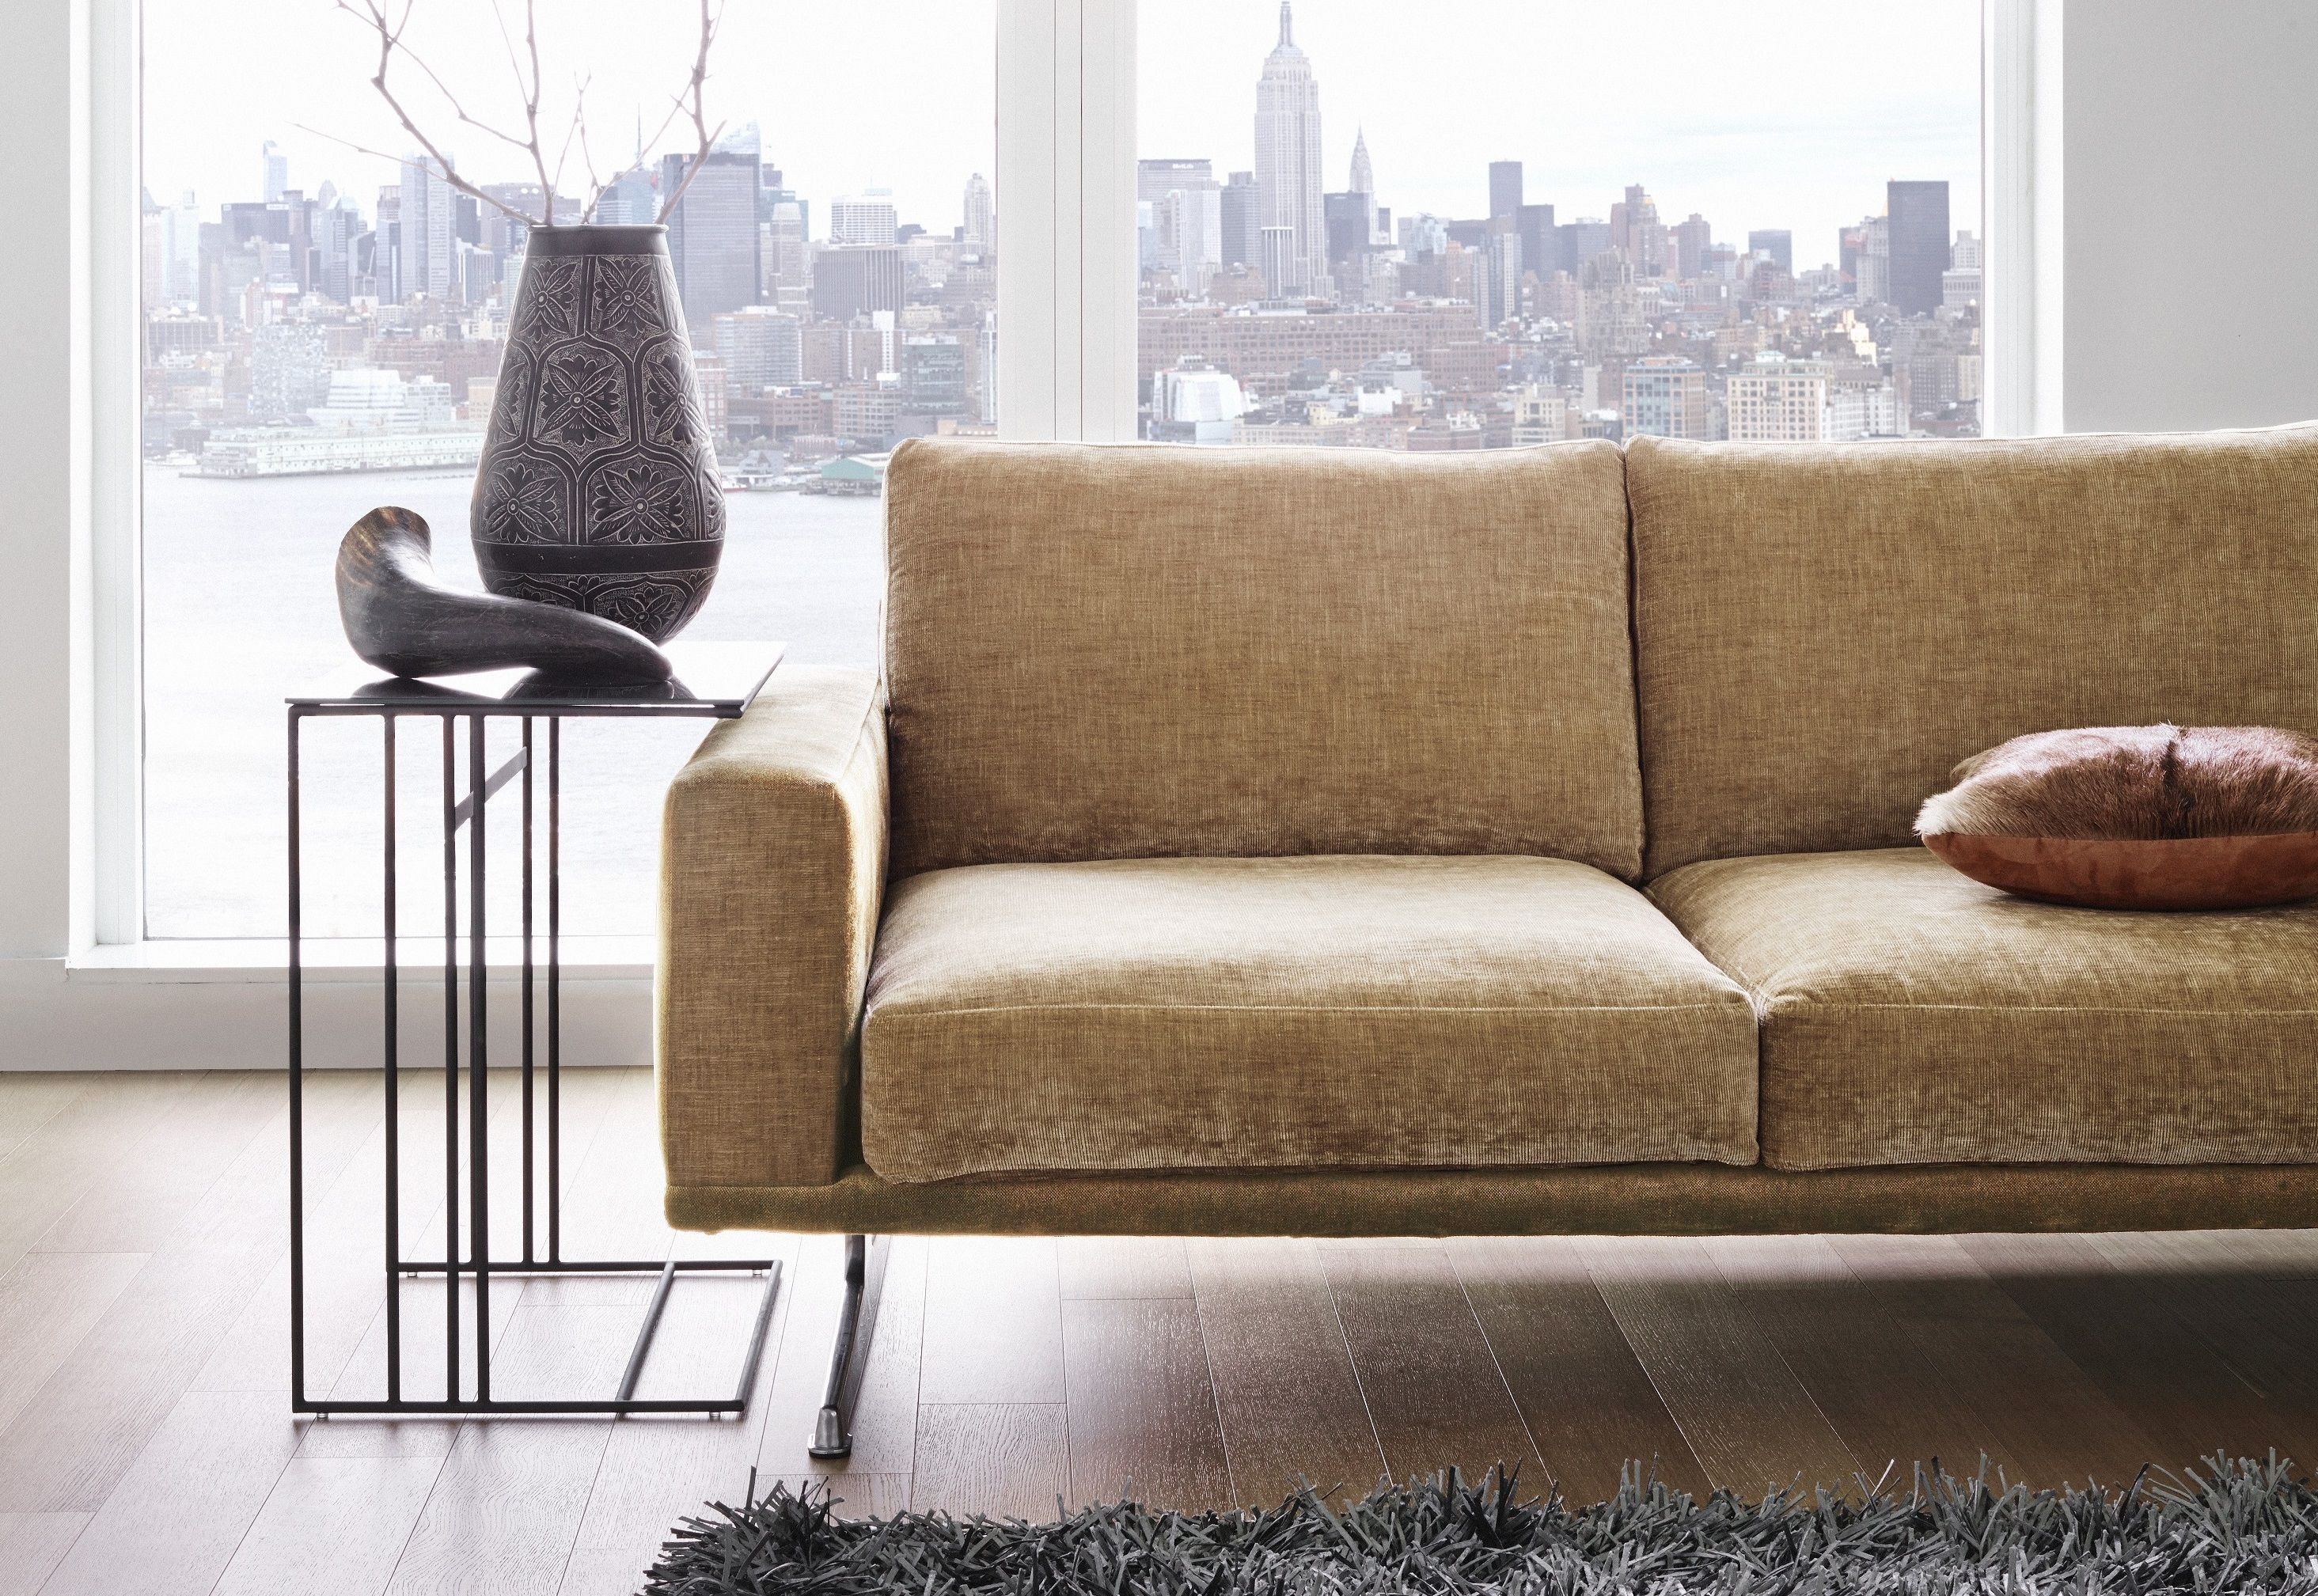 Pin by Made in Design on Bo Concept in 2019 | Boconcept ...